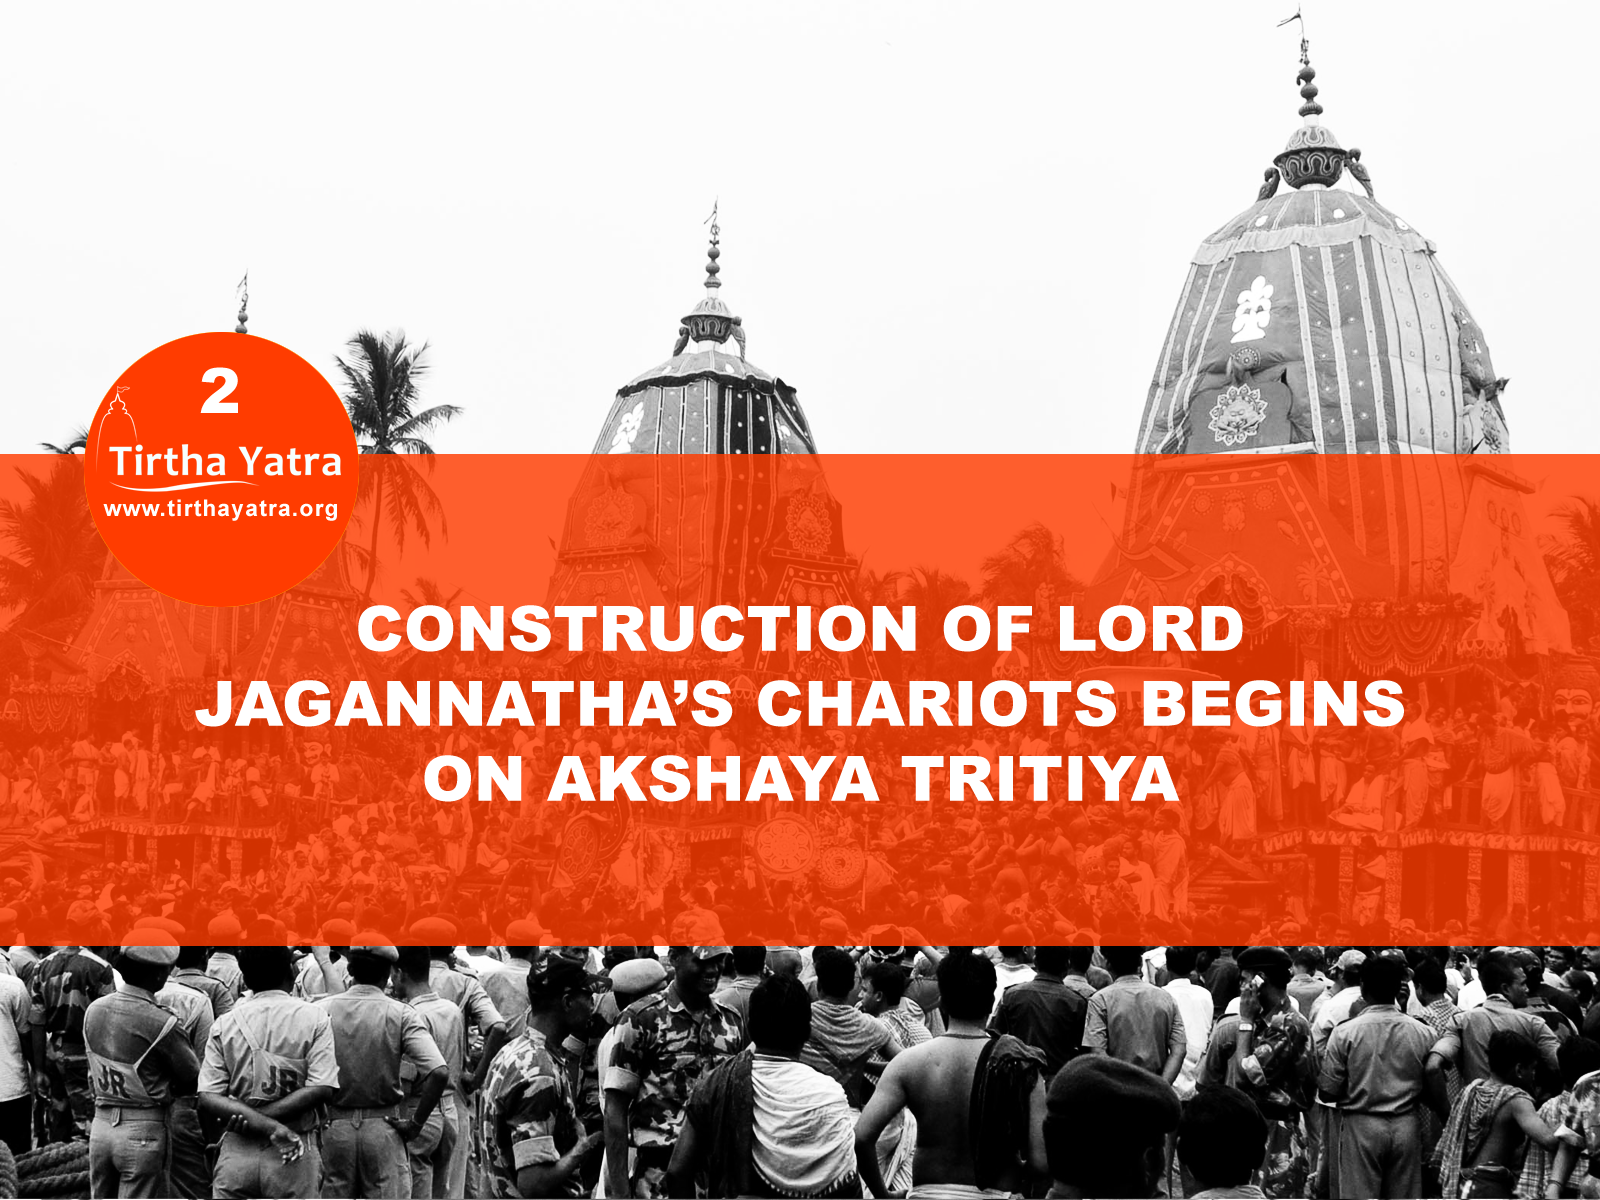 Construction of Jagannatha's chariot begins on akshaya tritiya